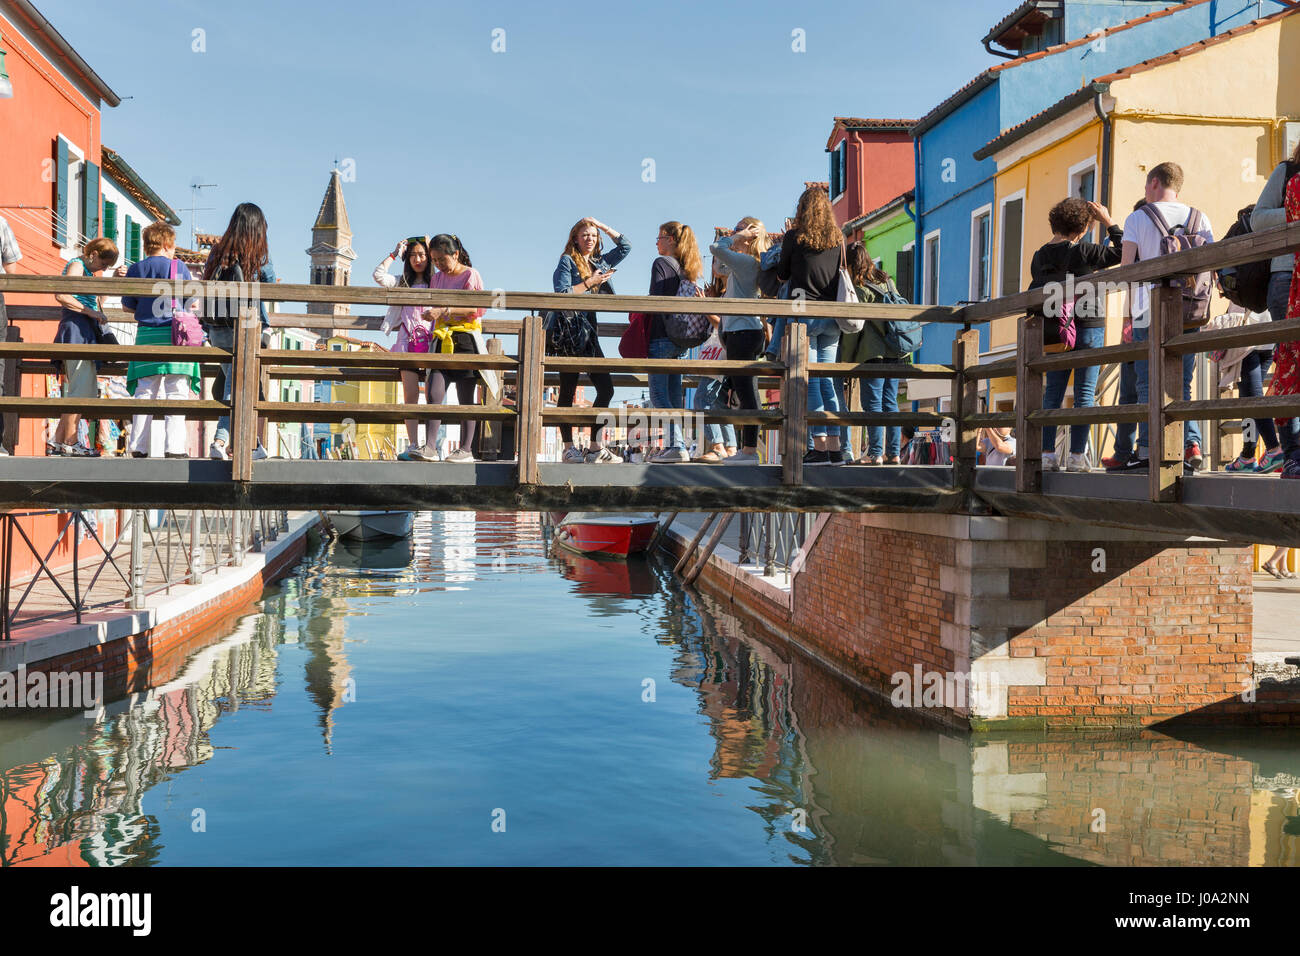 Colorful burano italy burano tourism - Burano Italy September 22 2016 Tourist Walk Along The Bridge Over Canal With Colourful Houses And Leaning Tower Burano Is An Island In The Venet